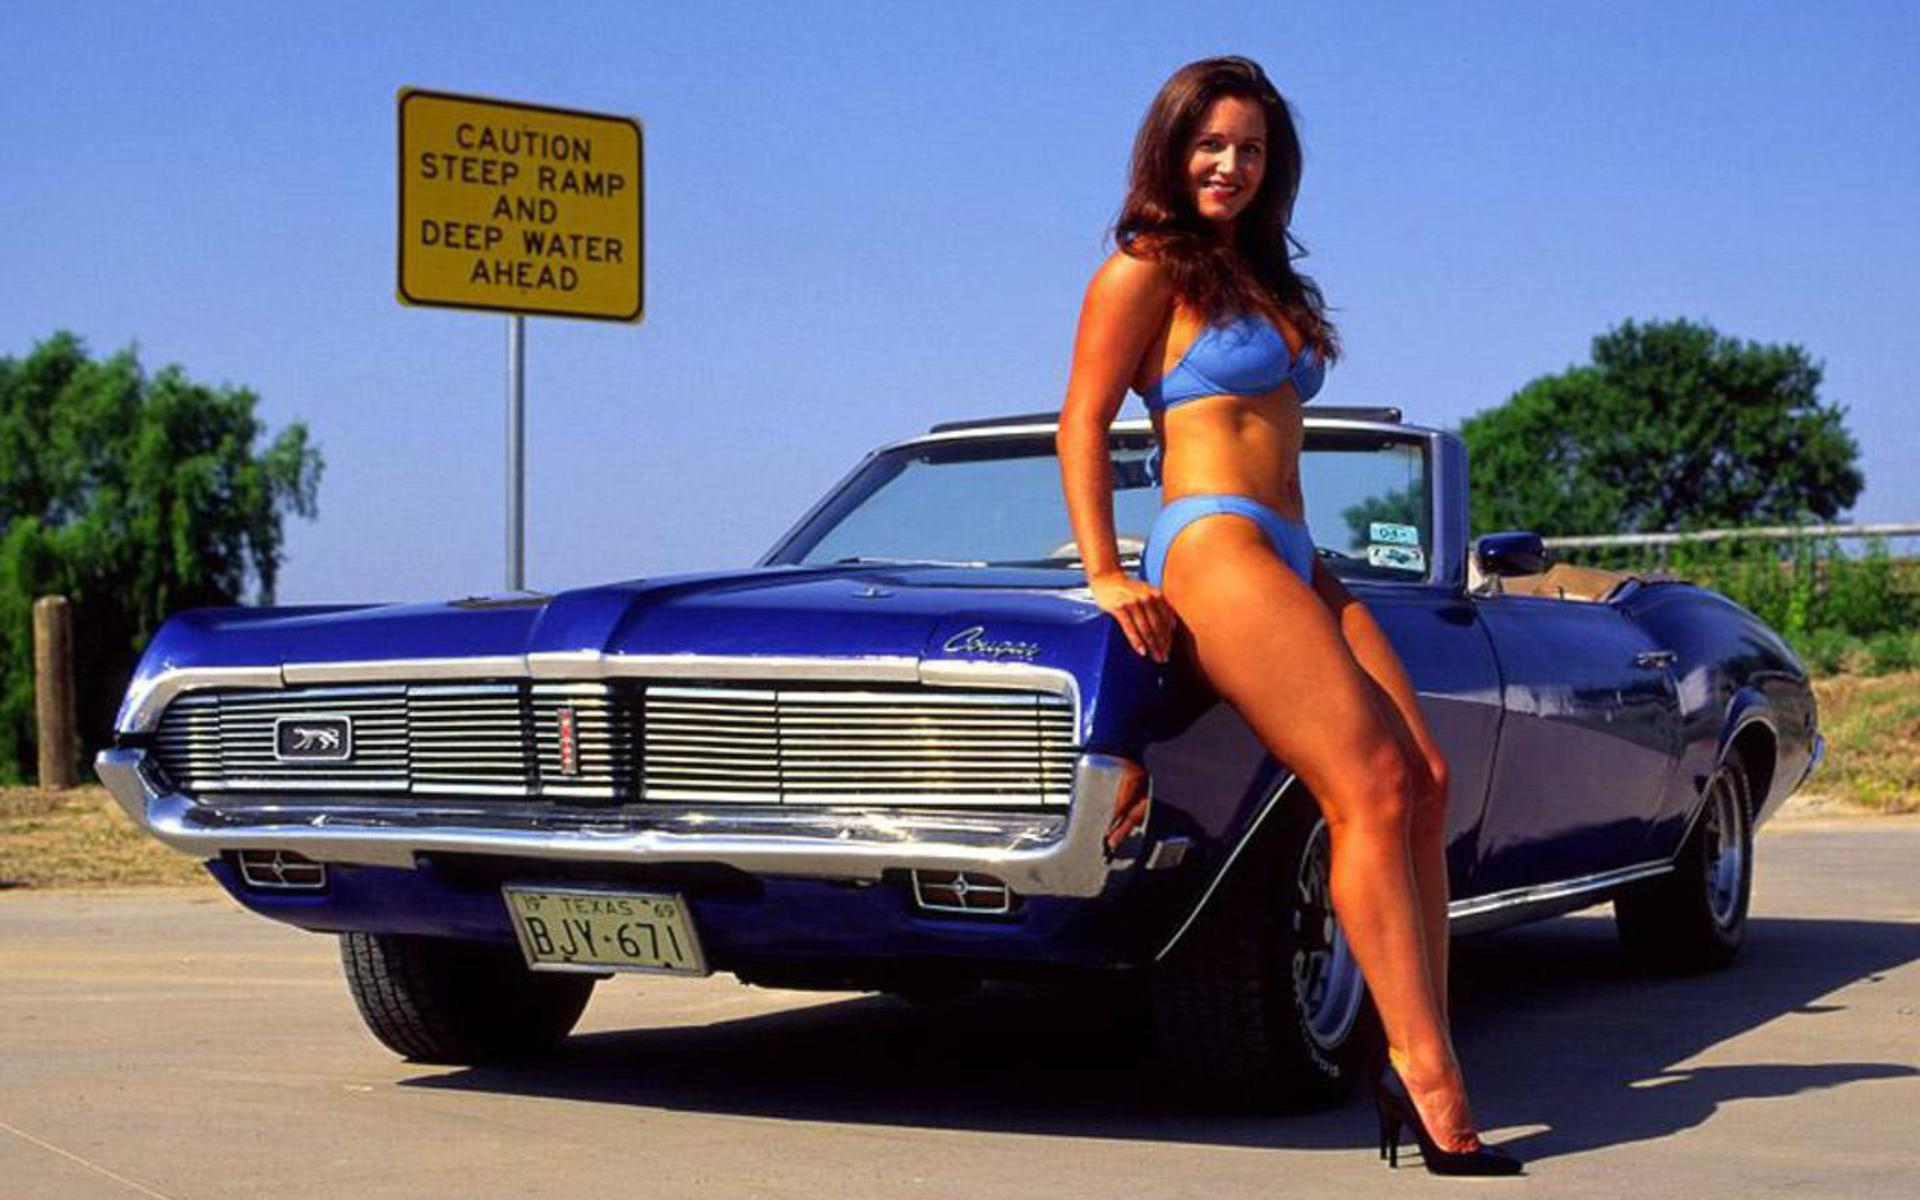 Naked women and classic cars